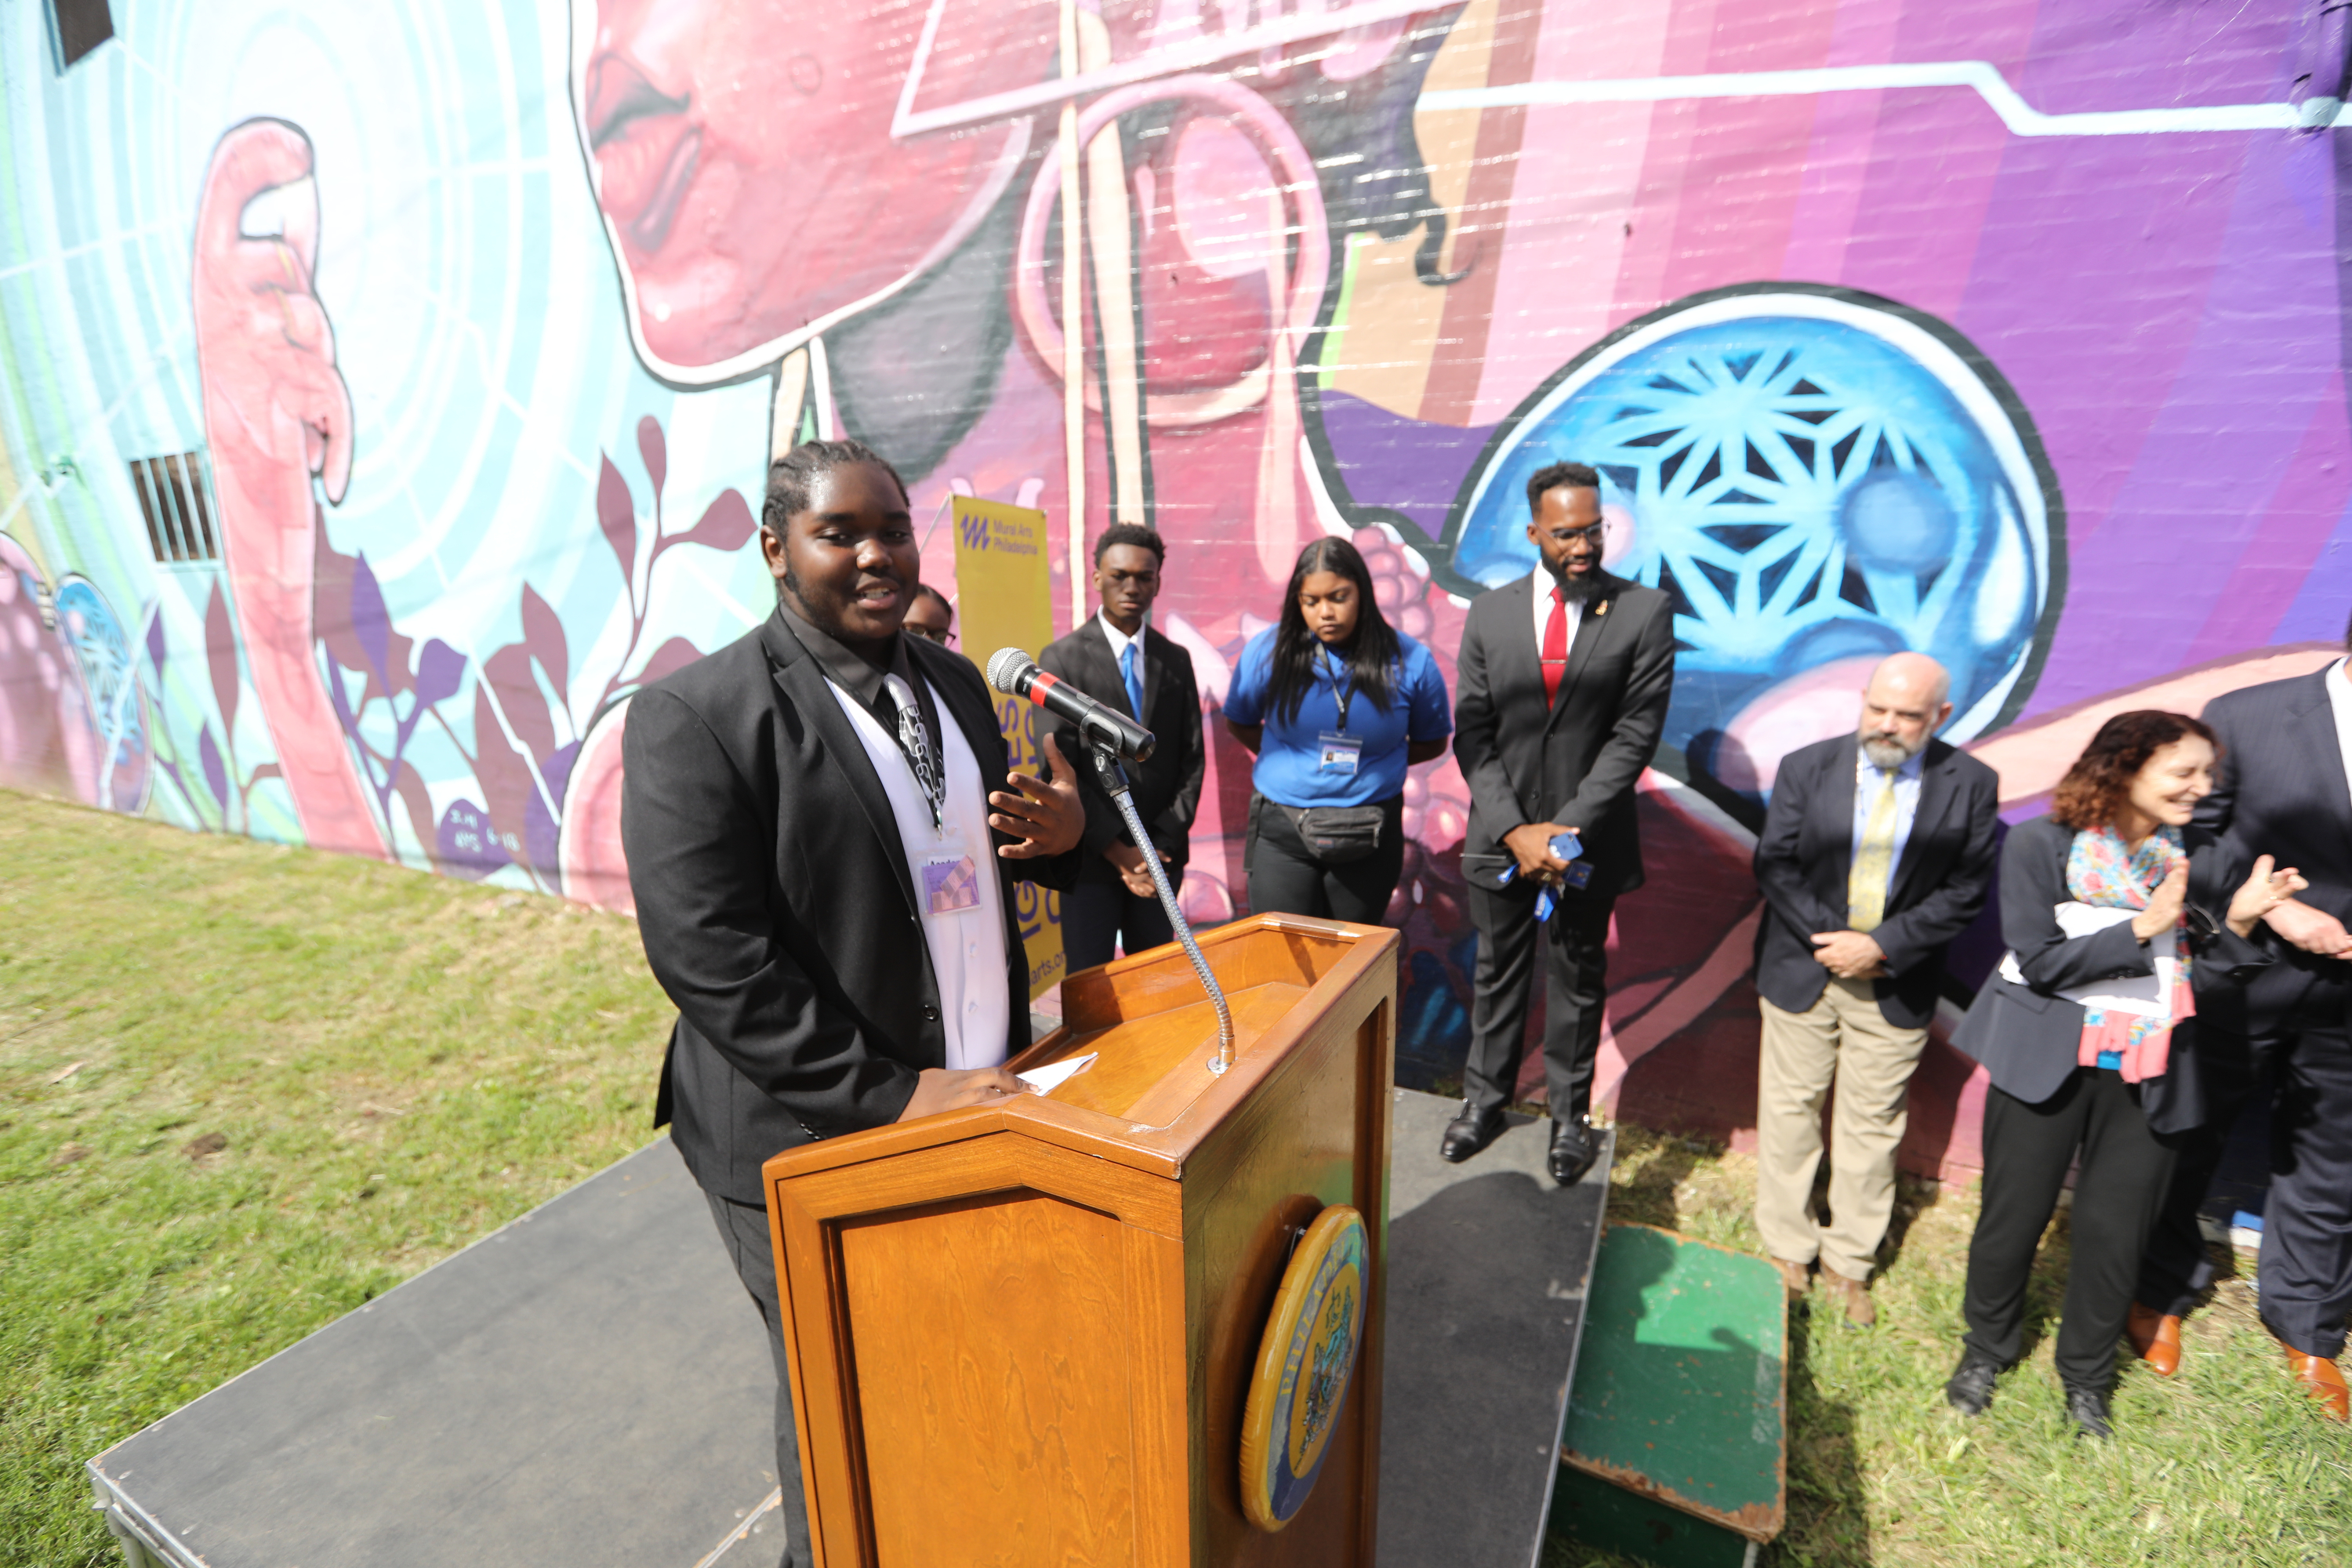 Student Asiaish Lawrence speaks about his involvement in Dreams, Diaspora, and Destiny, a new augmented reality mural that involved students from Haverford School and Mastery Shoemaker Charter School.